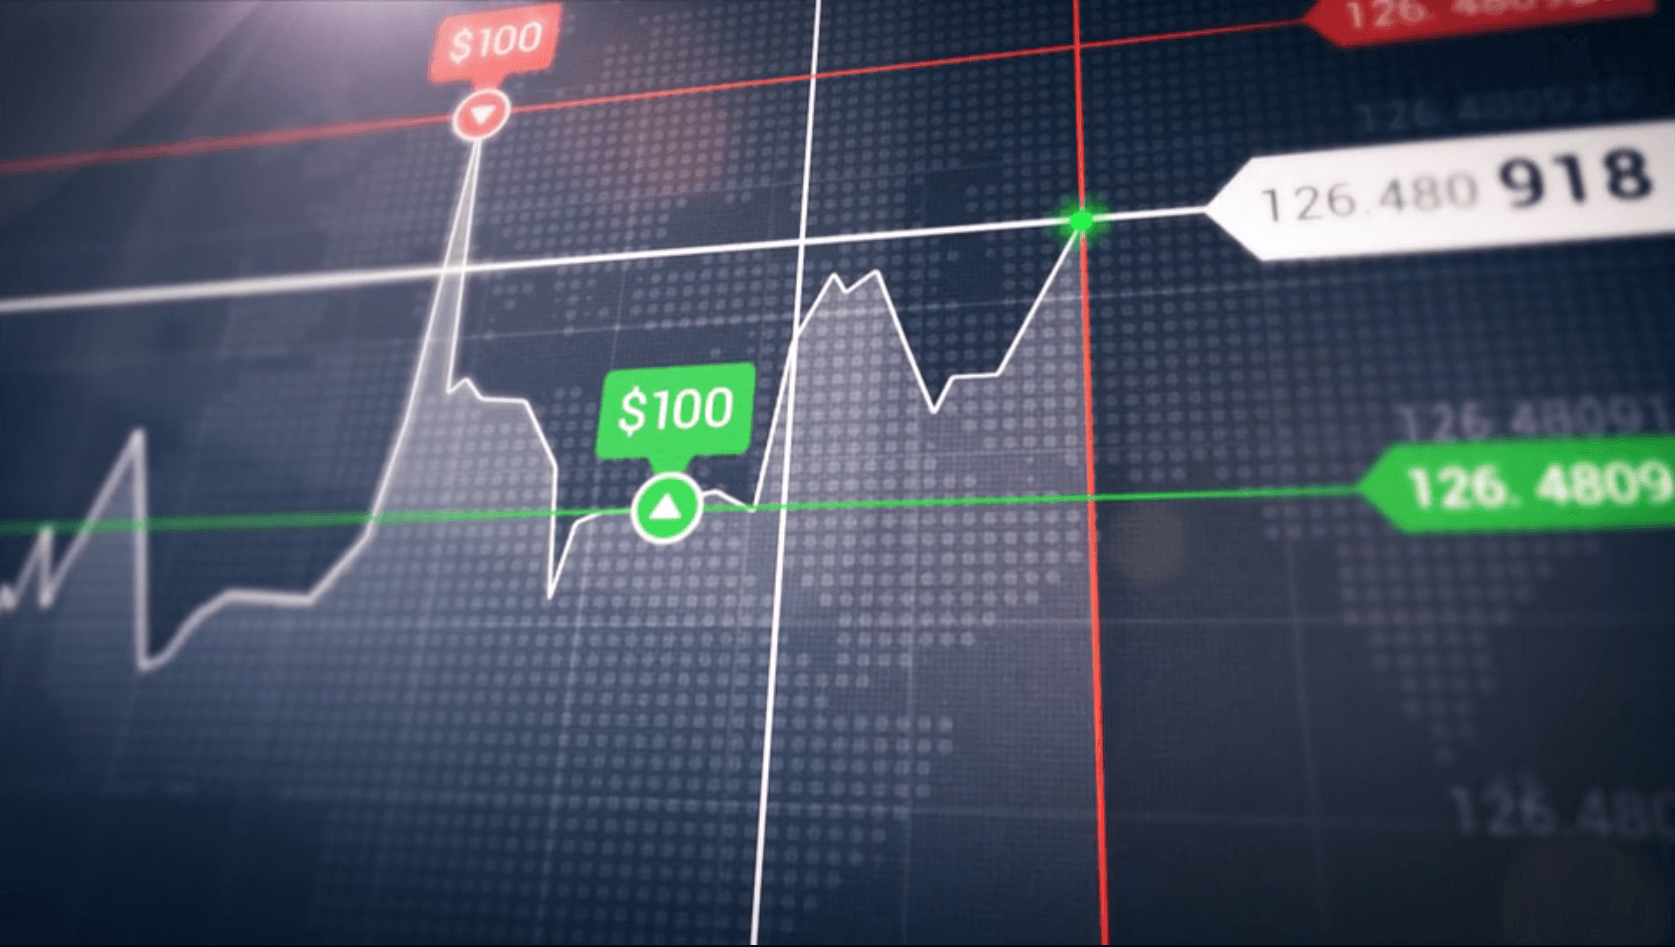 How to binary options work